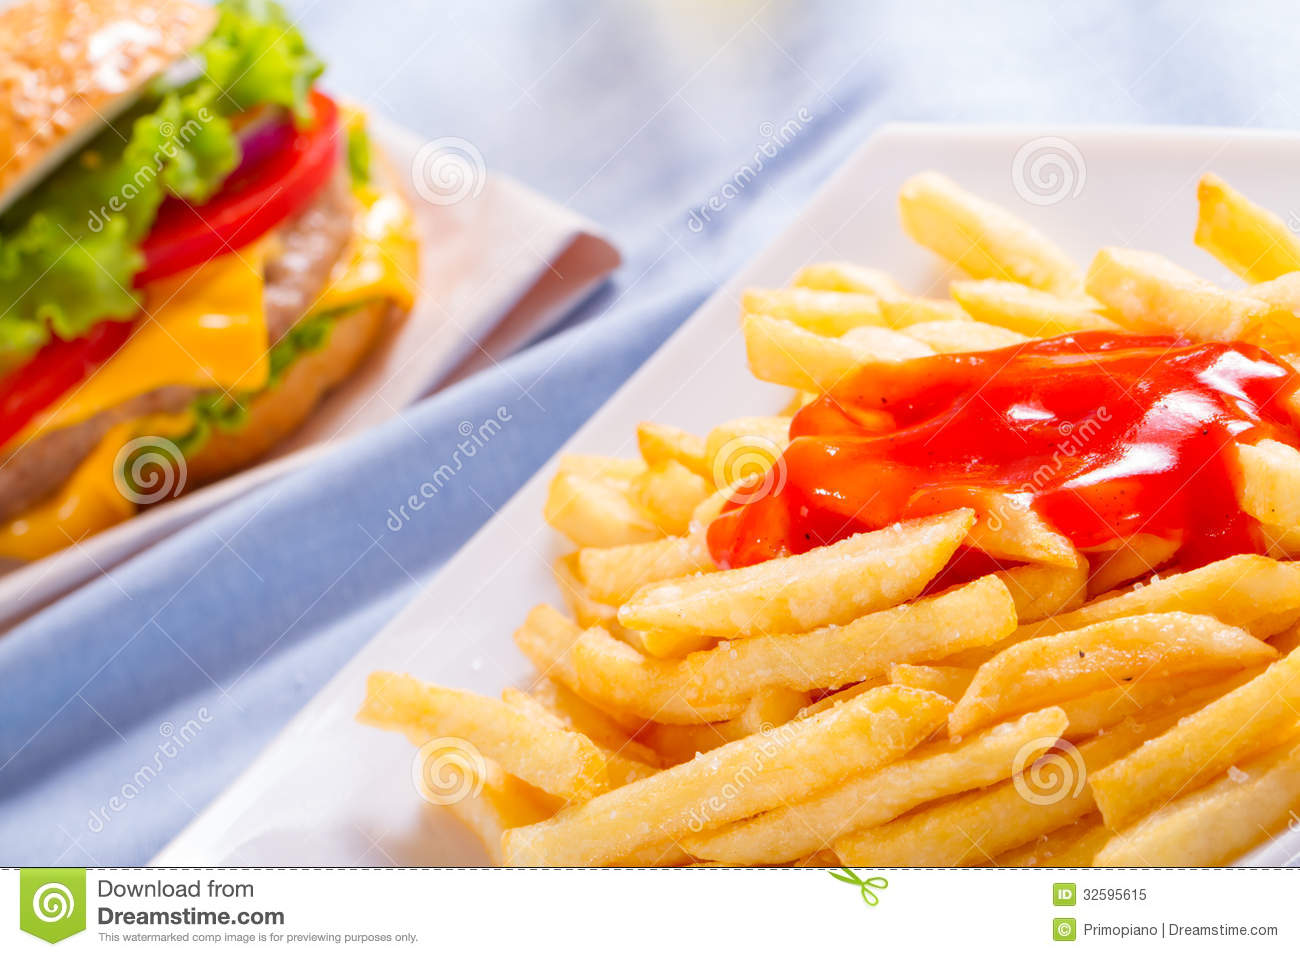 french fries with ketchup - photo #31